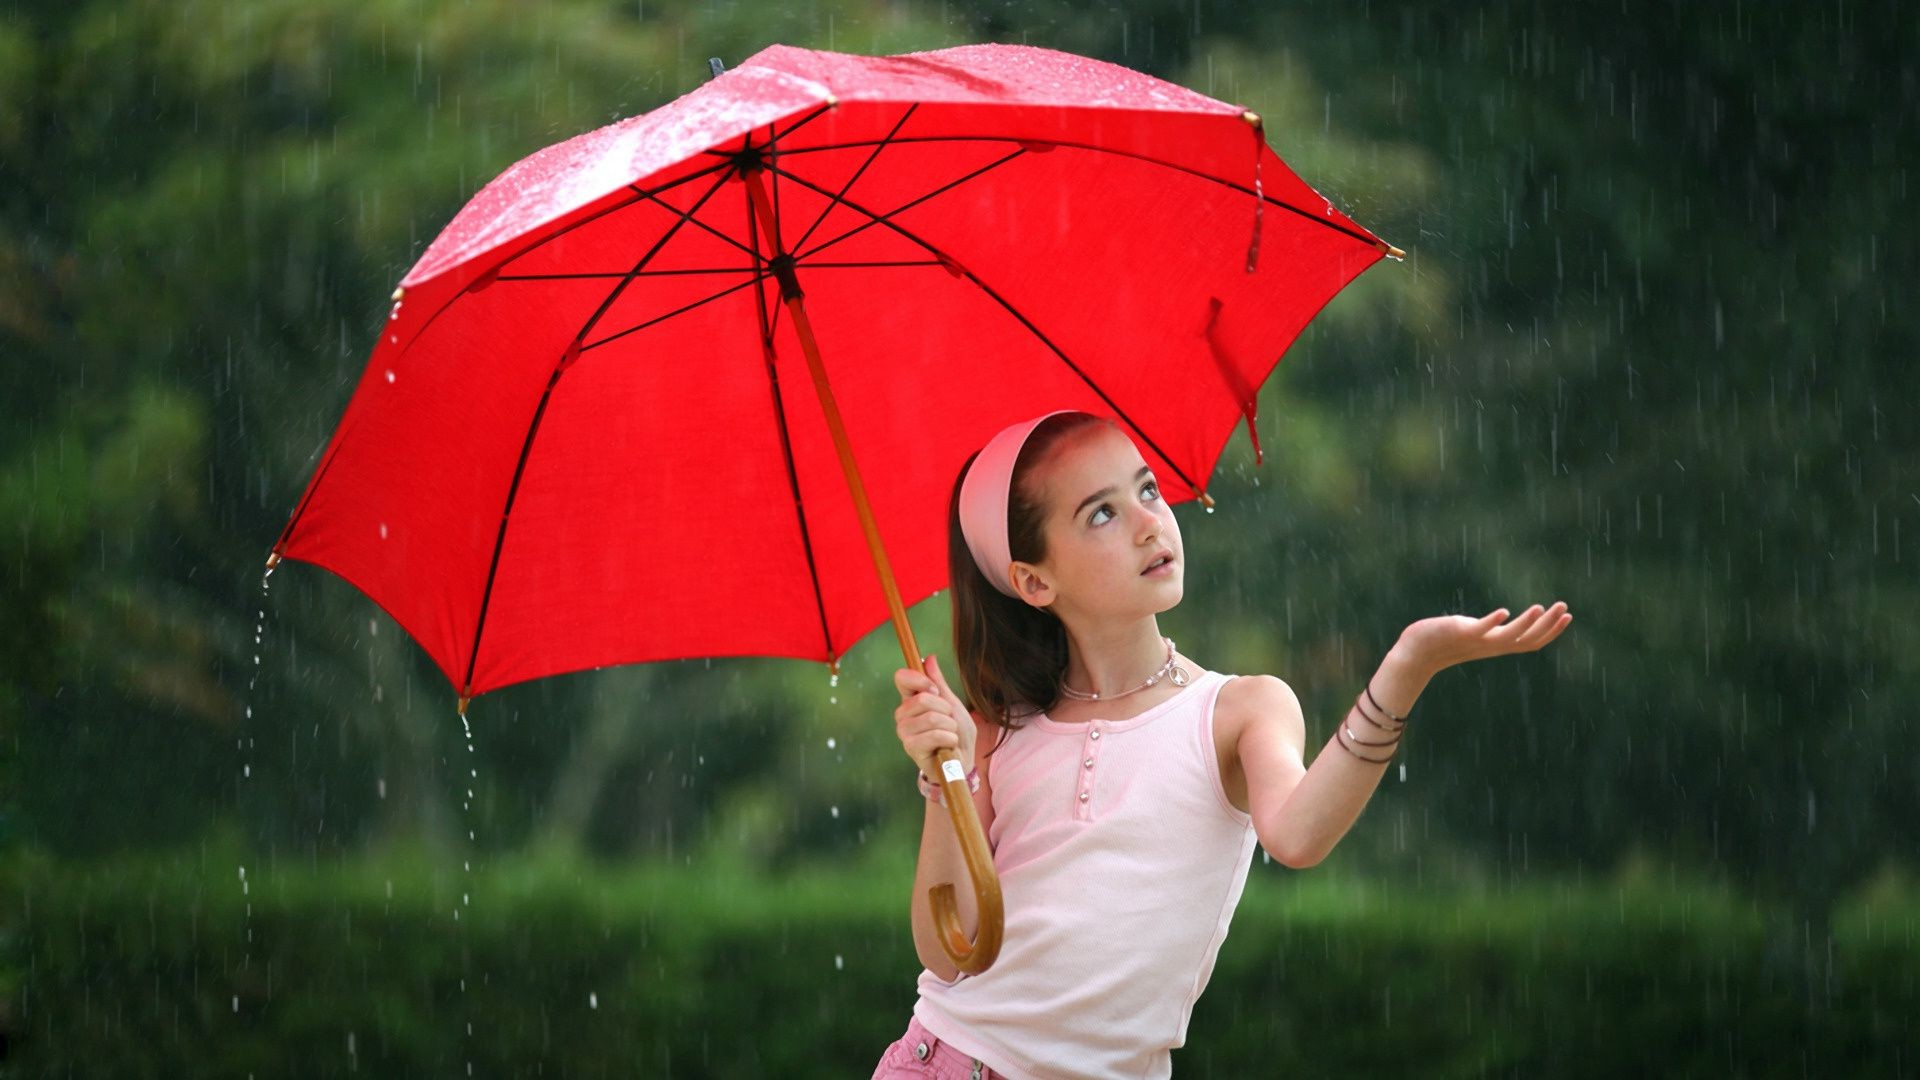 Girl umbrella red rain. Android wallpapers for free.